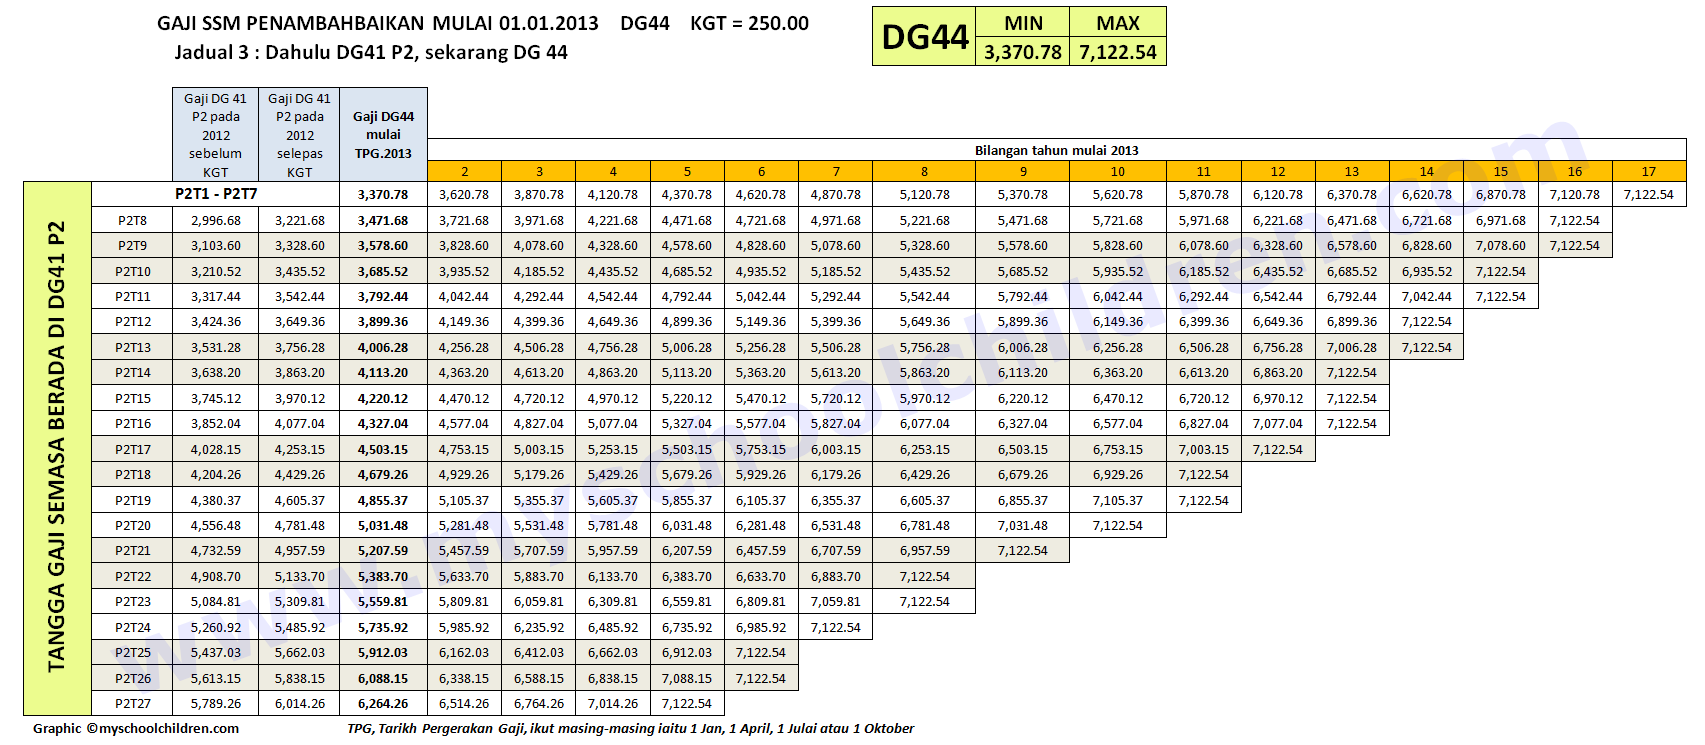 DG44 - DG54 from Grade DG41 - DG52 Backdated to year 2012 **